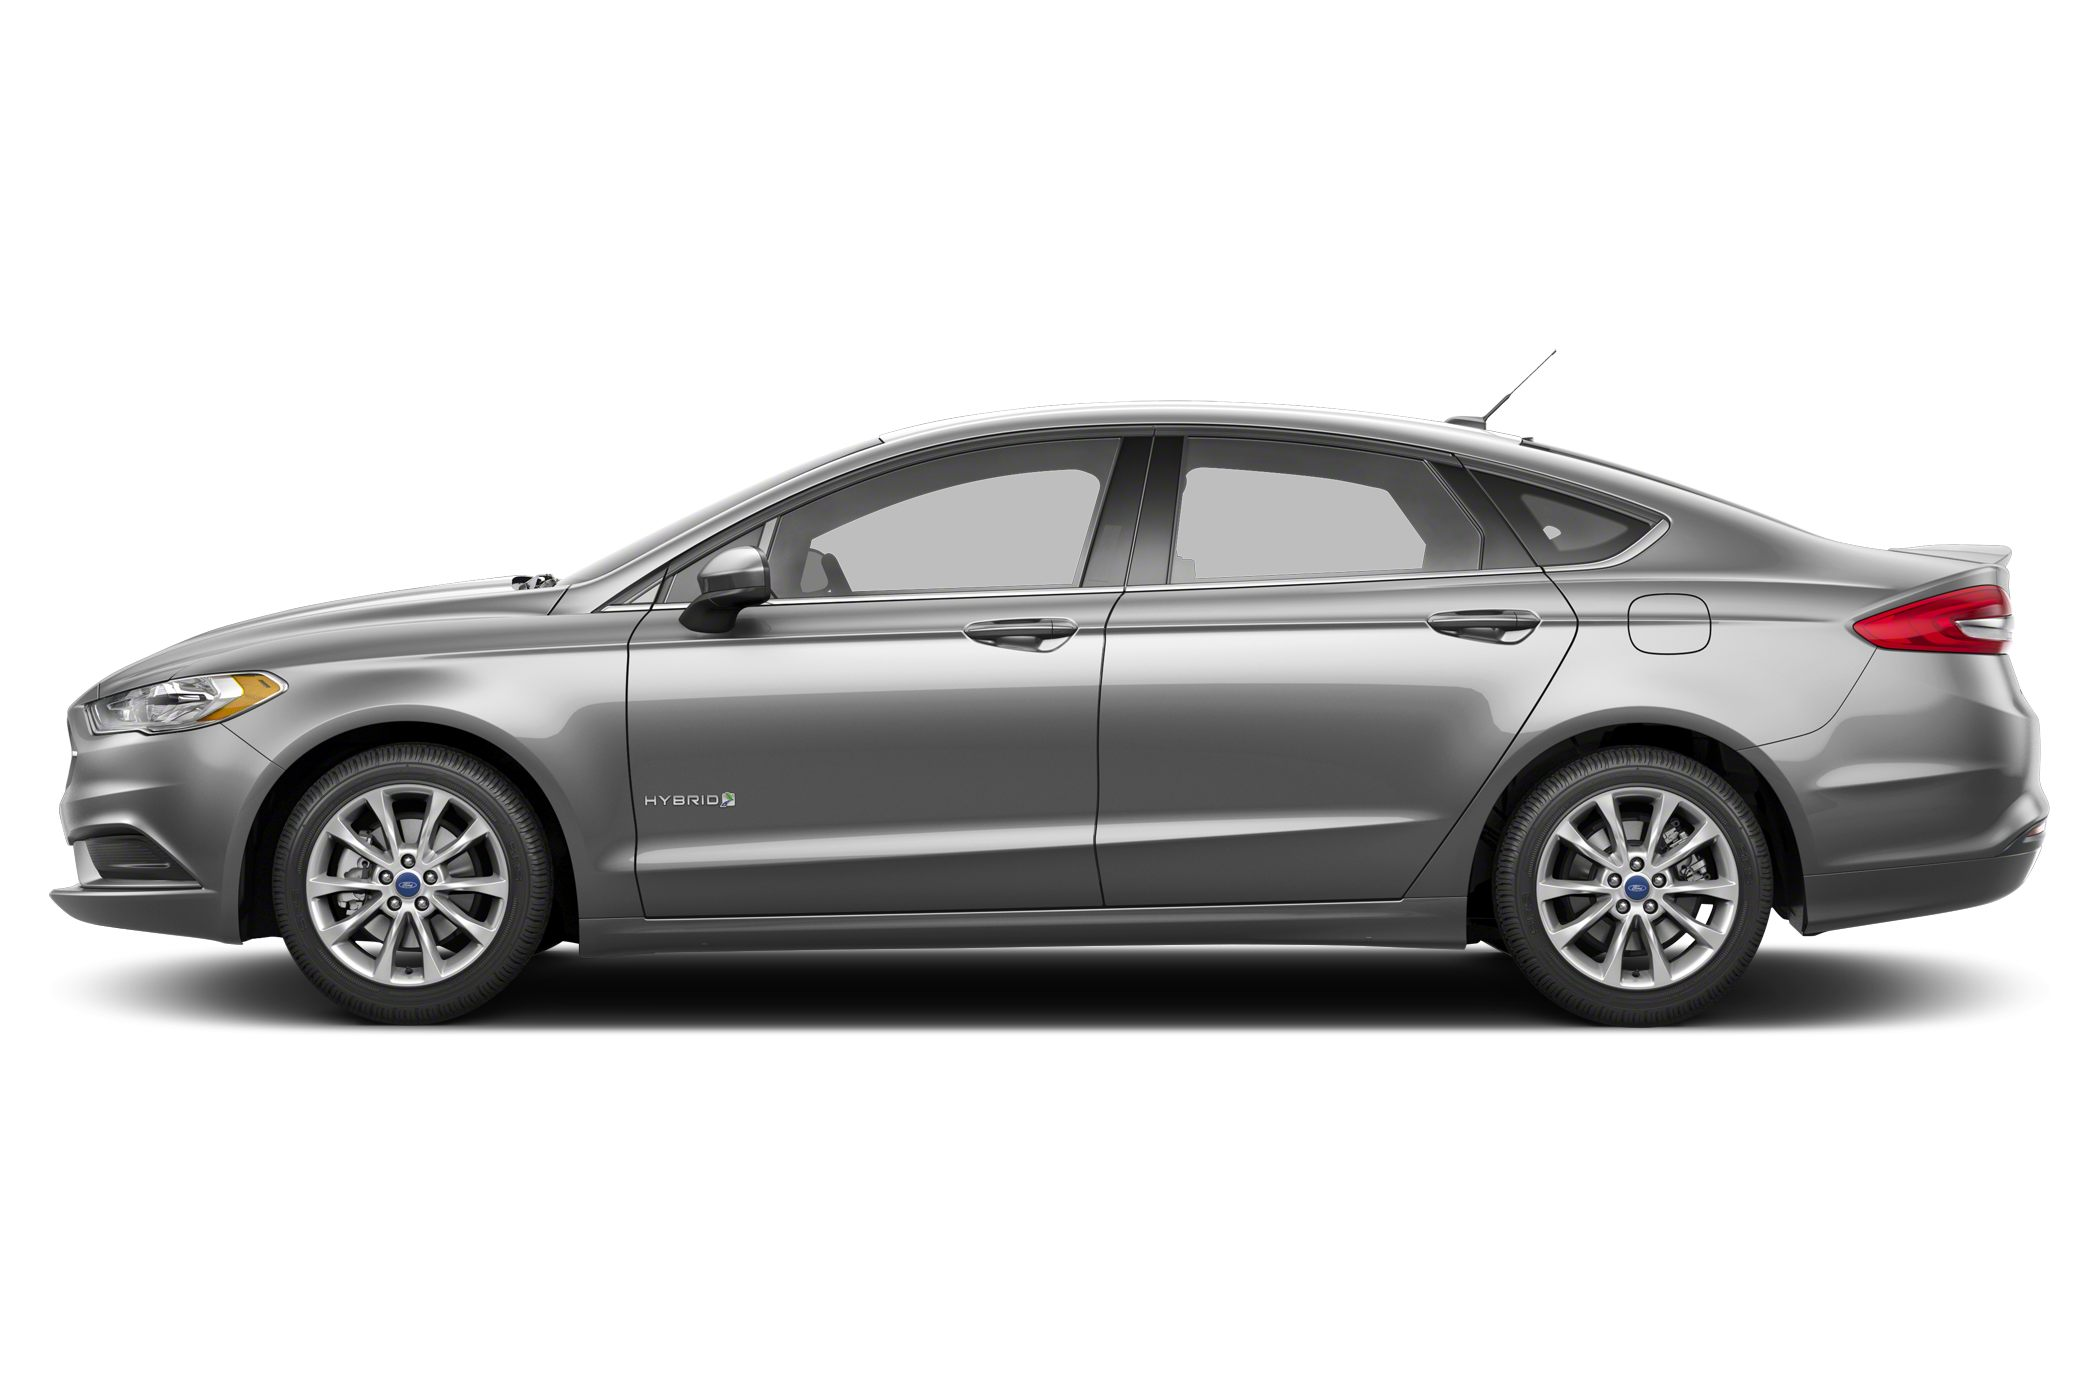 2017 ford fusion hybrid deals prices incentives leases overview carsdirect. Black Bedroom Furniture Sets. Home Design Ideas